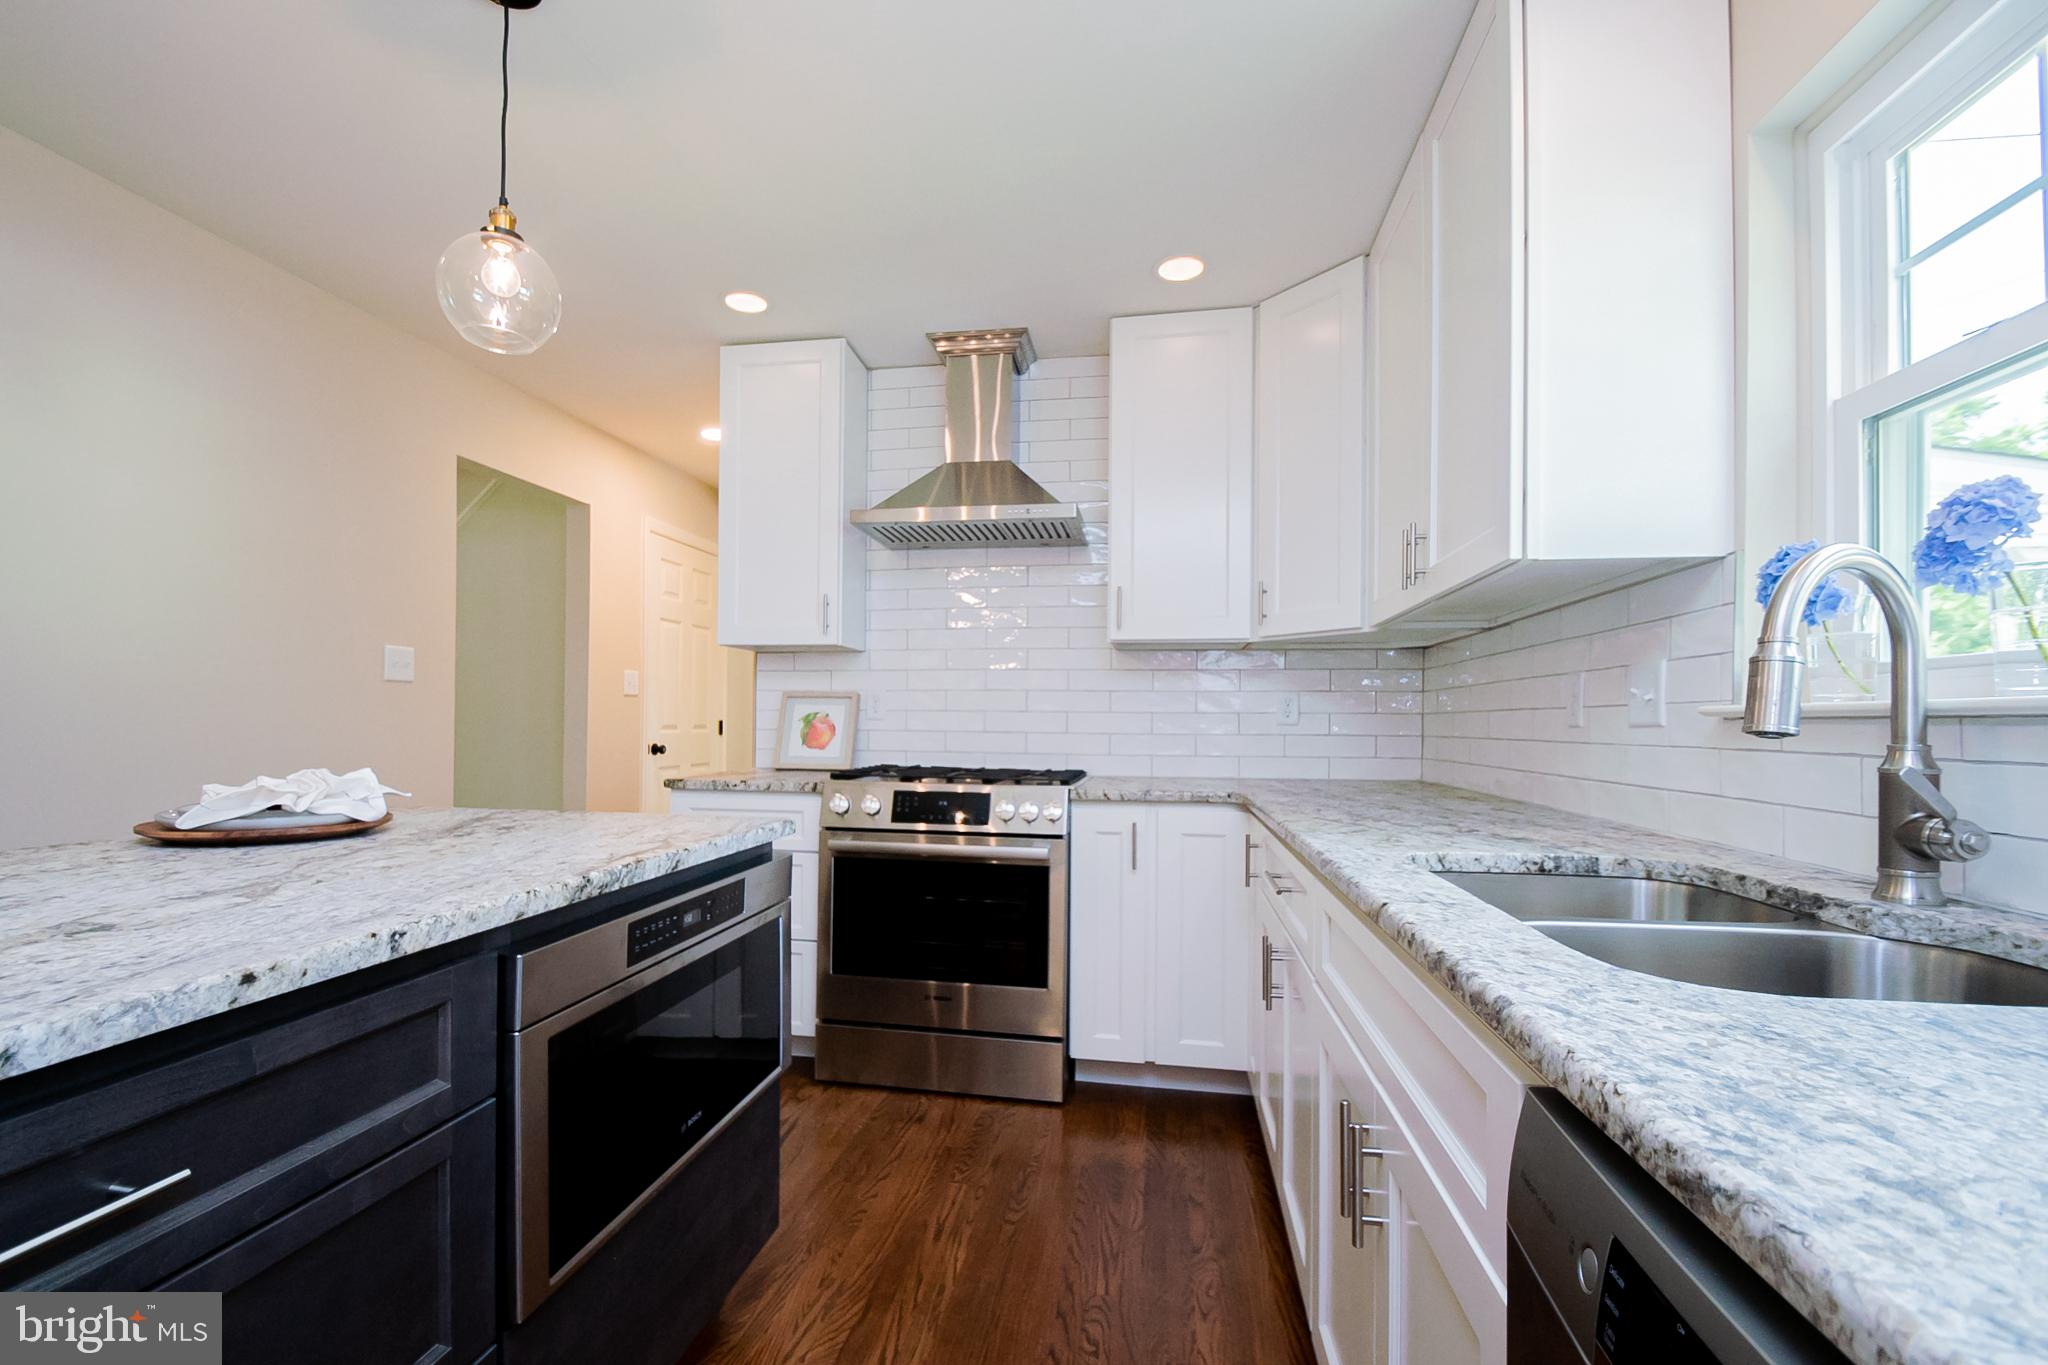 Visit this home virtually: http://www.vht.com/434078043/IDXS - Welcome home to 2413 Berwyn Road, a spectacular remodeled home nestled in the sought out neighborhood of Chalfonte. Located on a corner lot, this home provides great outdoor space. Upon entering the home, you will be greeted by new tiling throughout the foyer. The first level of this home offers a family room, living room, kitchen, half bathroom, laundry, and dining area. The kitchen offers brand new Wolff cabinets with soft close drawers, leather finished granite countertops, stainless steel appliances, stainless steel self venting range hood, new floors, new windows overlooking the backyard, and an island with ample seating for those gathering around during food preparation. The main floor also consists of refinished hardwood flooring and fresh paint. The second floor of this home offers four bedrooms and two full bathrooms. The hardwoods throughout the second floor have all been stained, and the walls have been freshly painted. The large primary bedroom has a completely remodeled shower. Enjoy countless activities in the half finished basement, made perfect for entertaining! You will also enjoy morning sunrises and evening sunsets on your back deck. The back deck is complete with dimmable lighting and a ceiling fan for seasonal enjoyment. The exterior of this home offers a professionally landscaped yard, and ample parking in the driveway. Make sure you schedule your tour today! Agent is related to seller.